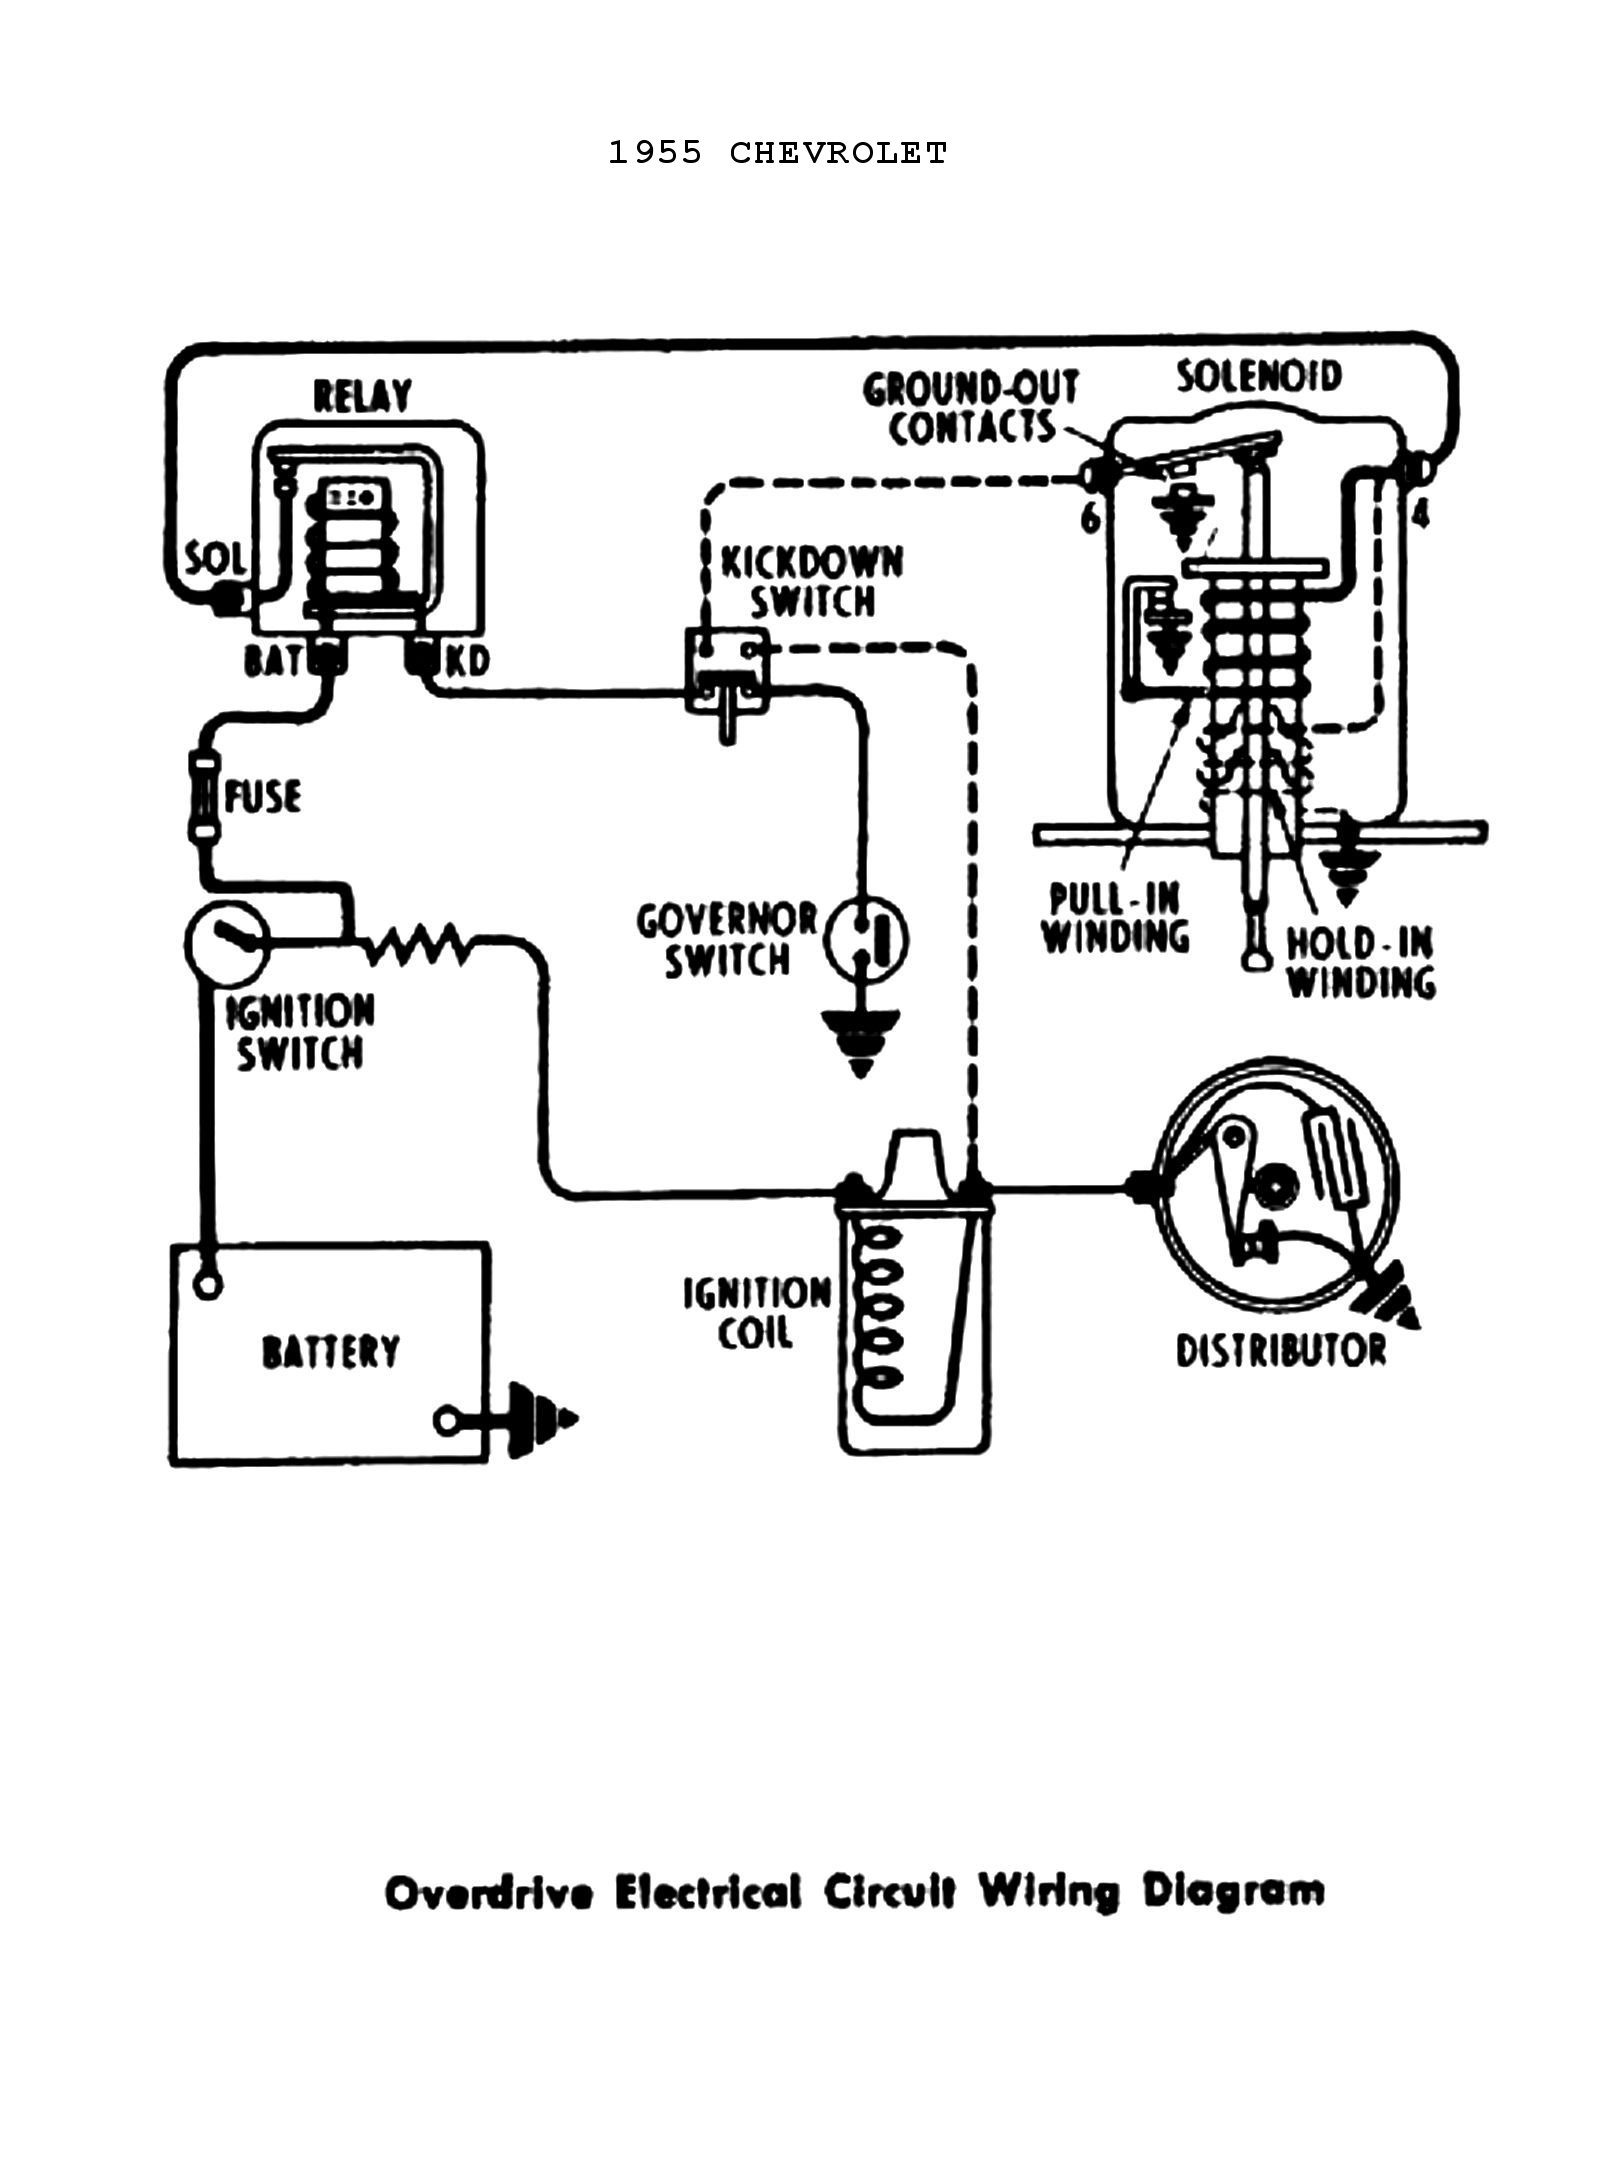 1955 ford wiring diagram 3 speed overdrive wiring - trifive.com, 1955 chevy 1956 ... 1955 chrysler wiring diagram